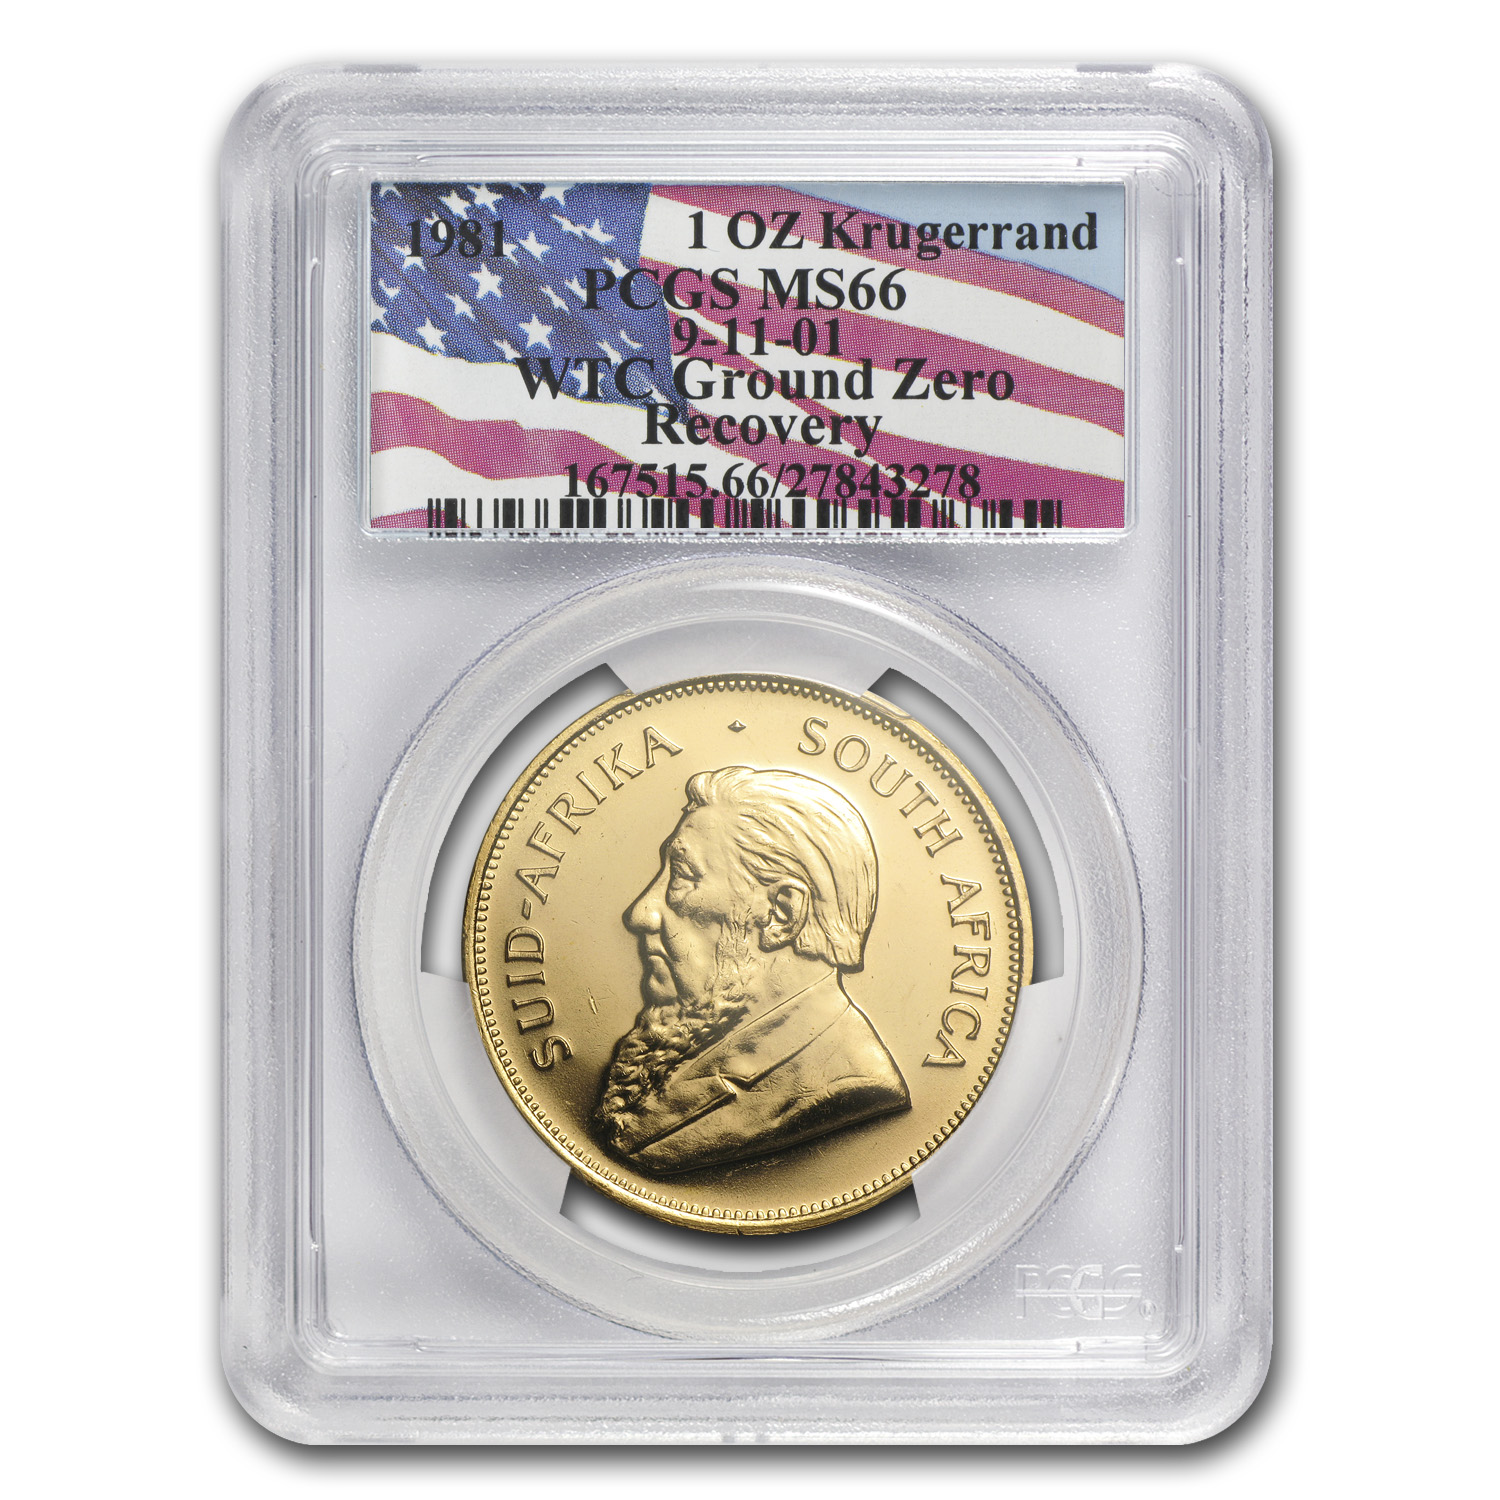 1981 South Africa 1 oz Gold Krugerrand MS-66 PCGS (WTC)